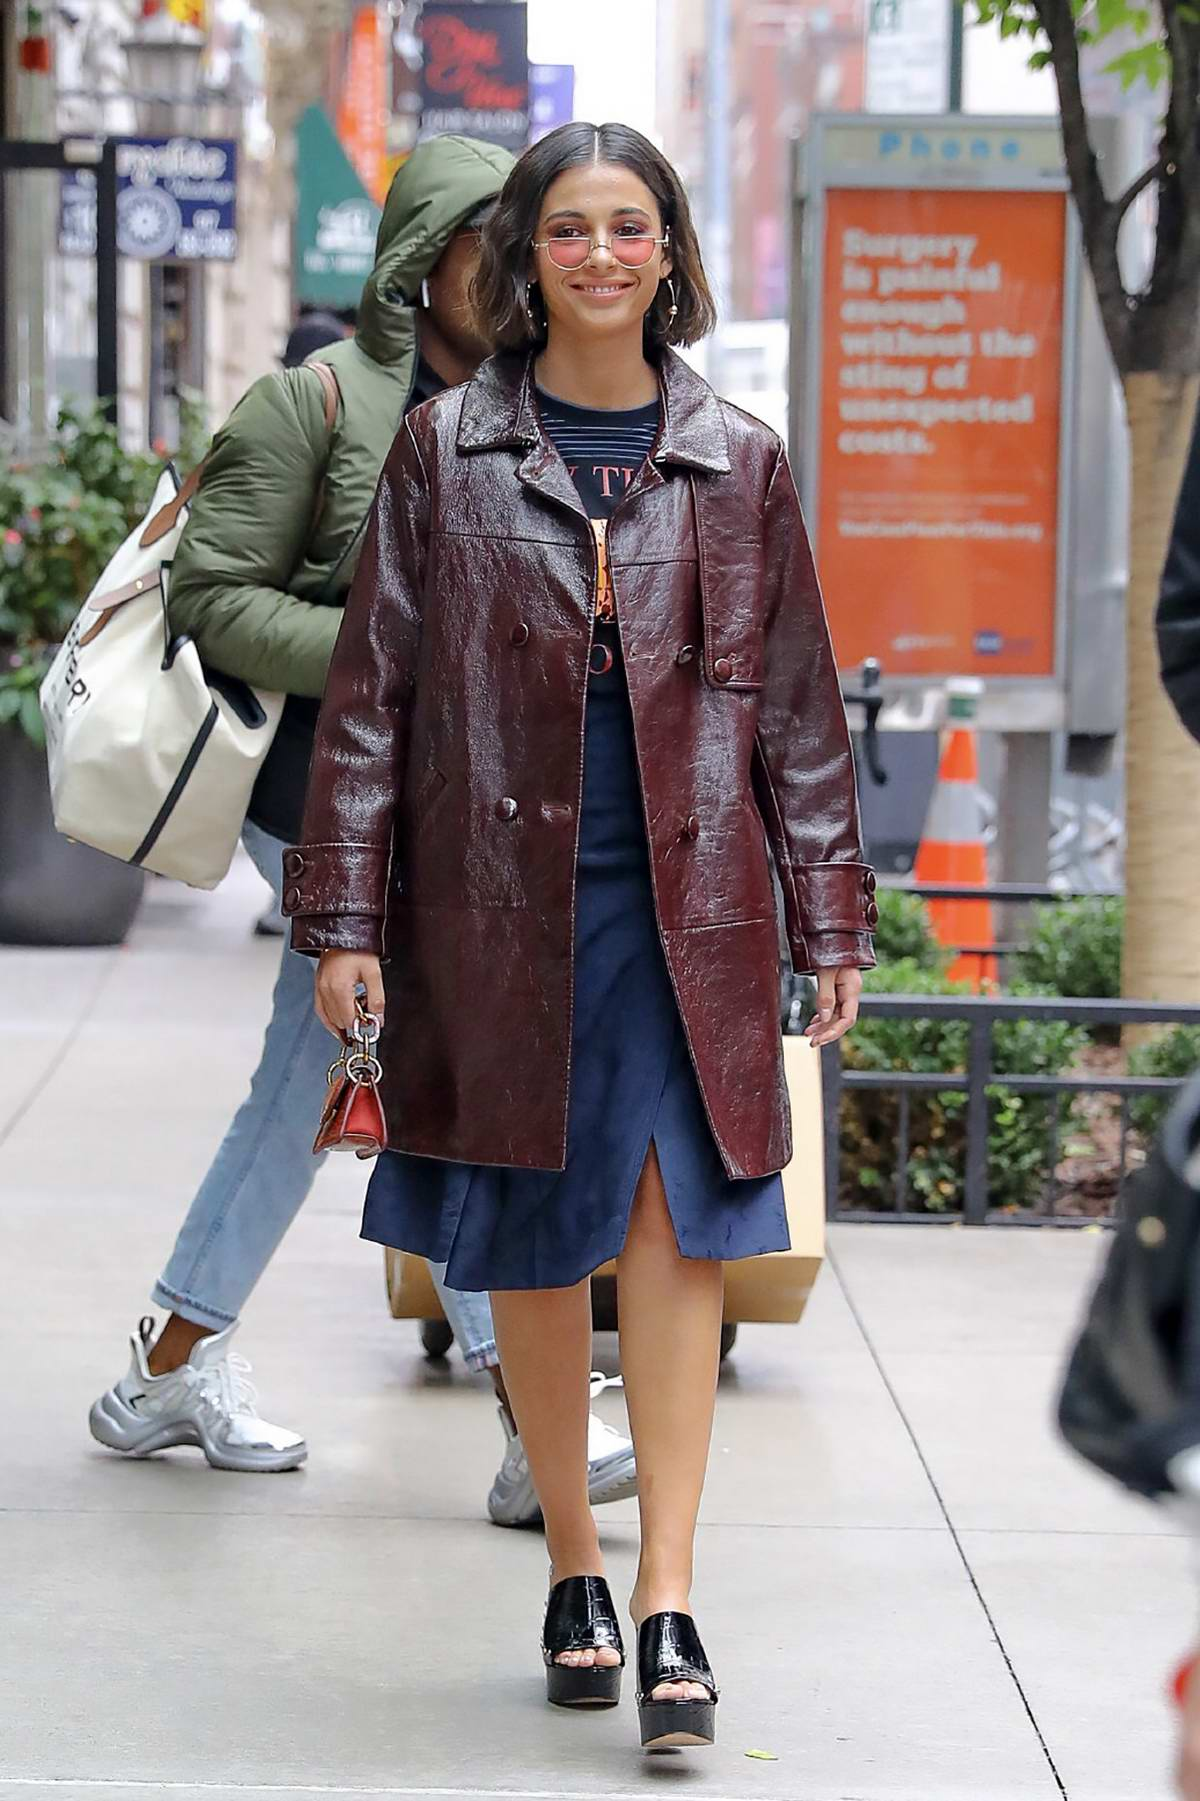 Naomi Scott seen wearing a burgundy leather coat while out in Midtown in New York City